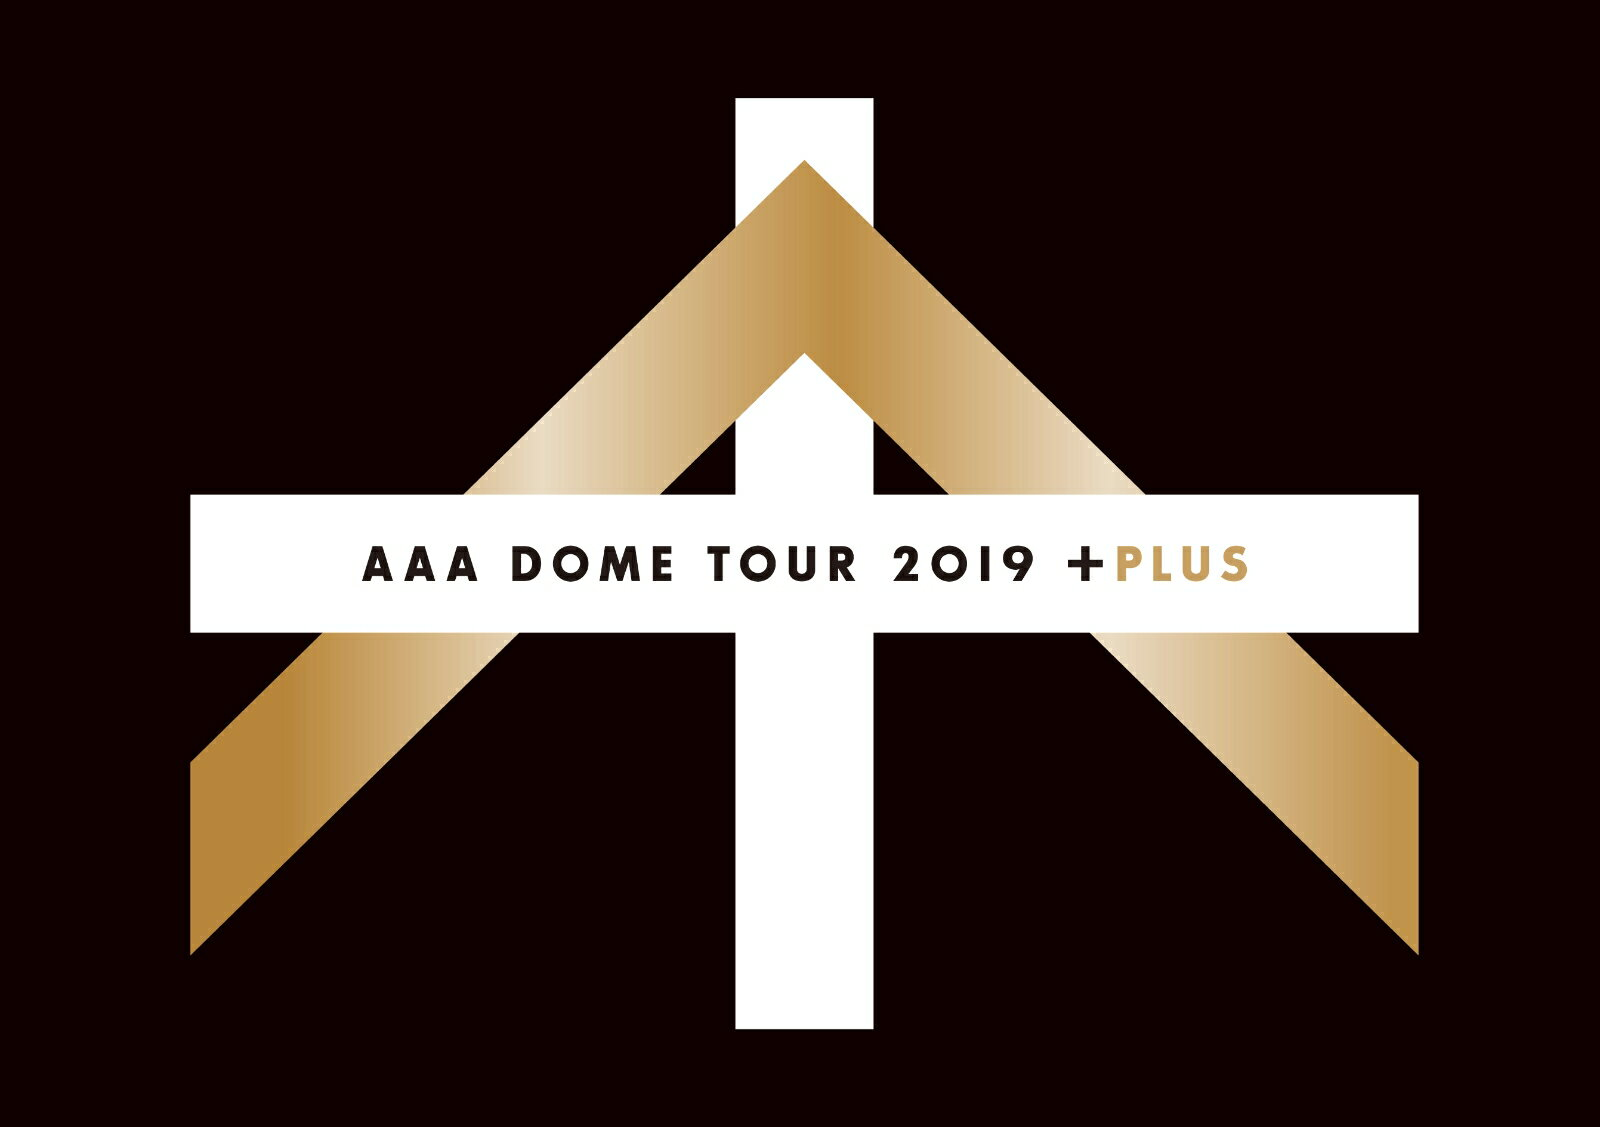 AAA DOME TOUR 2019 +PLUS (初回生産限定盤 DVD3枚組+グッズ) (スマプラ対応)